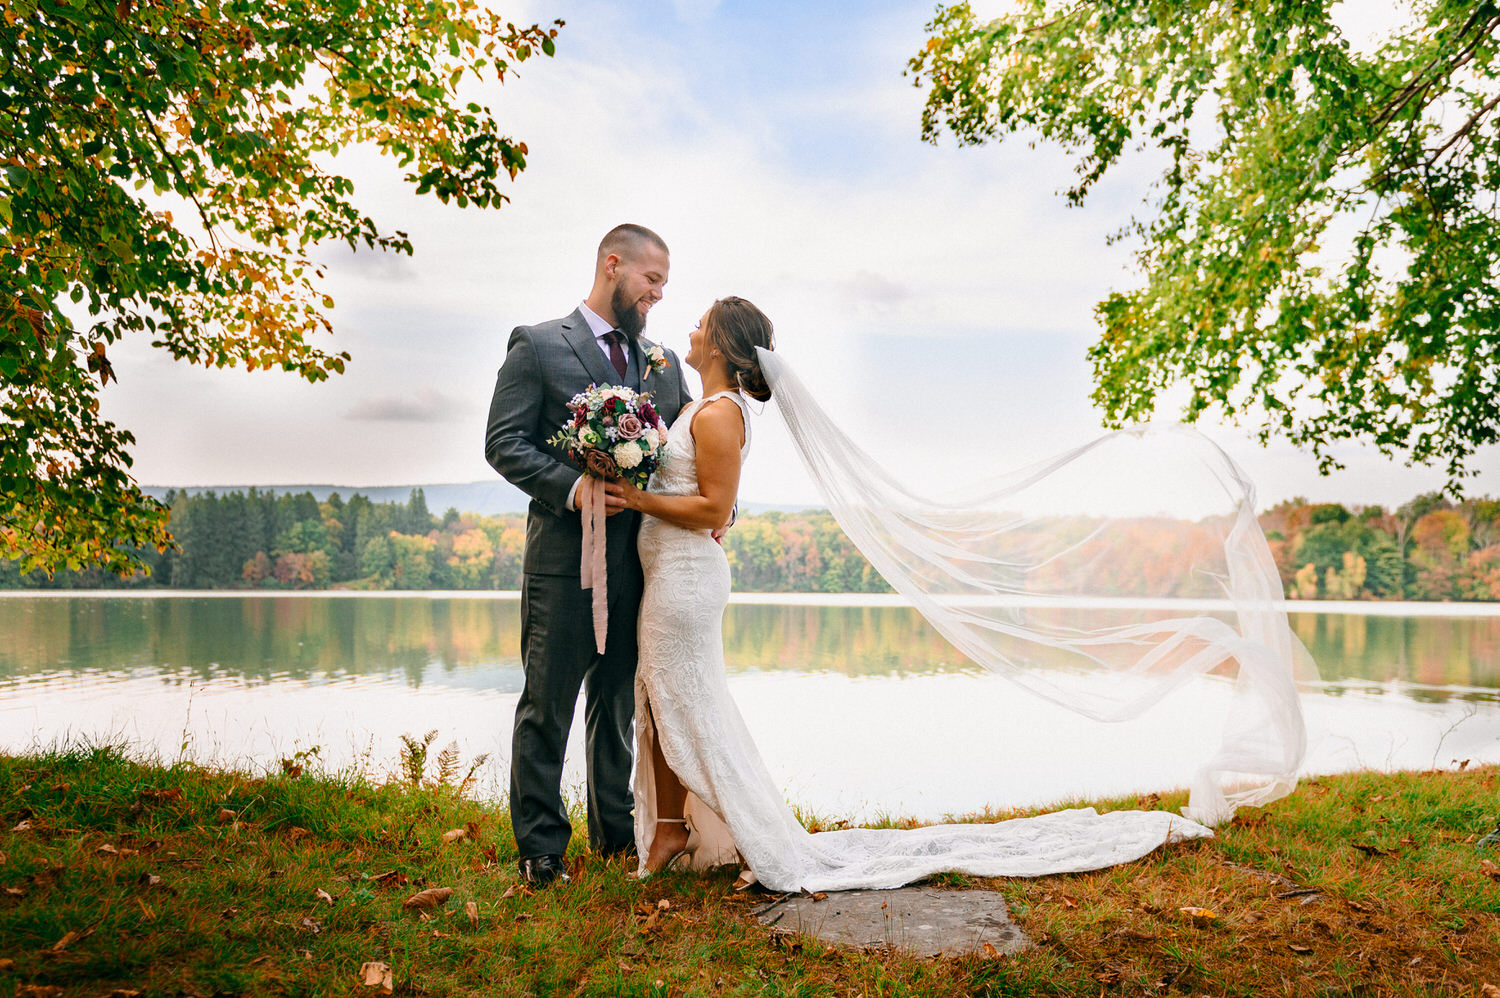 Trout Lake Wedding of Steven Samantha in the Pocono Mountains of Pennsylvania